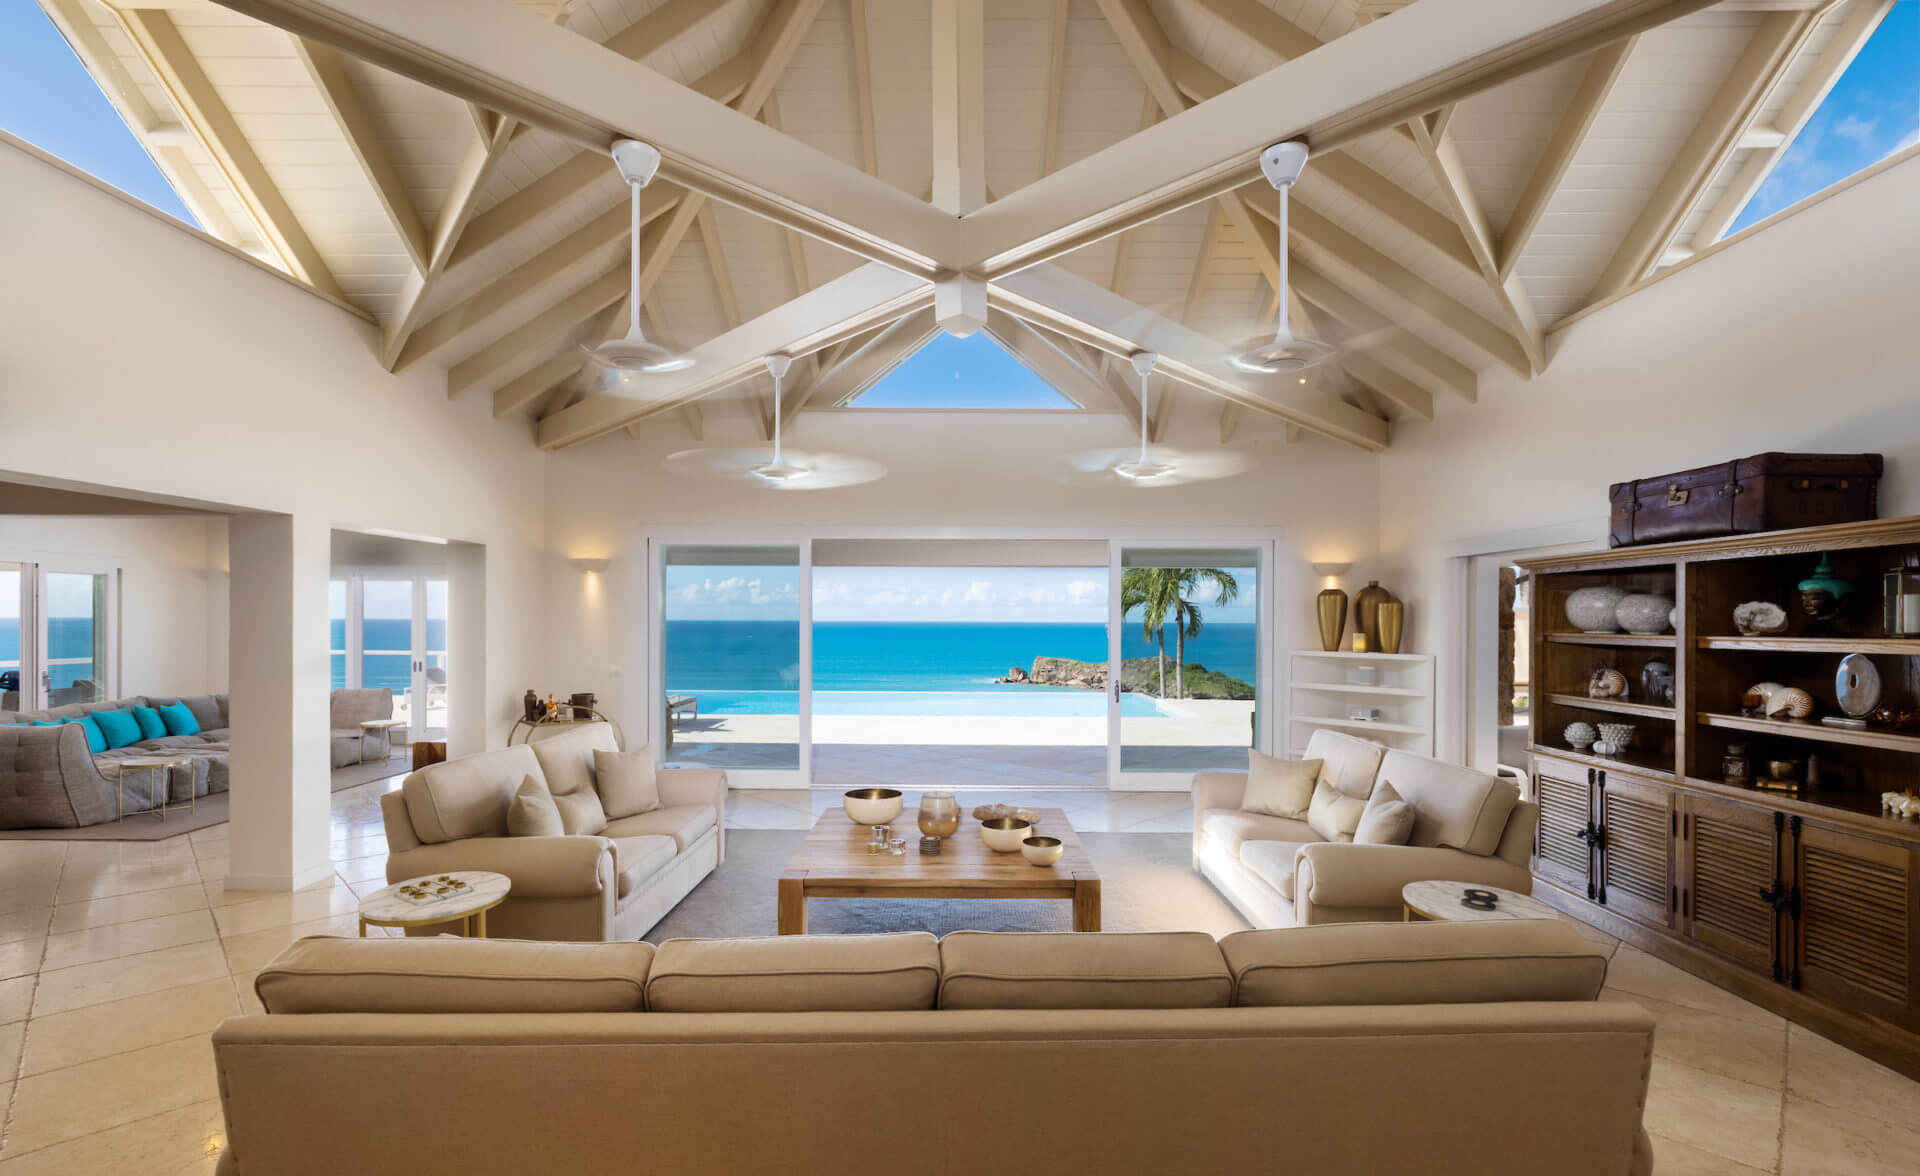 SOTHEBYS REAL ESTATE JOINS LUXURIA LIFESTYLE INTERNATIONAL AS A NEW GLOBAL ADVERTISER